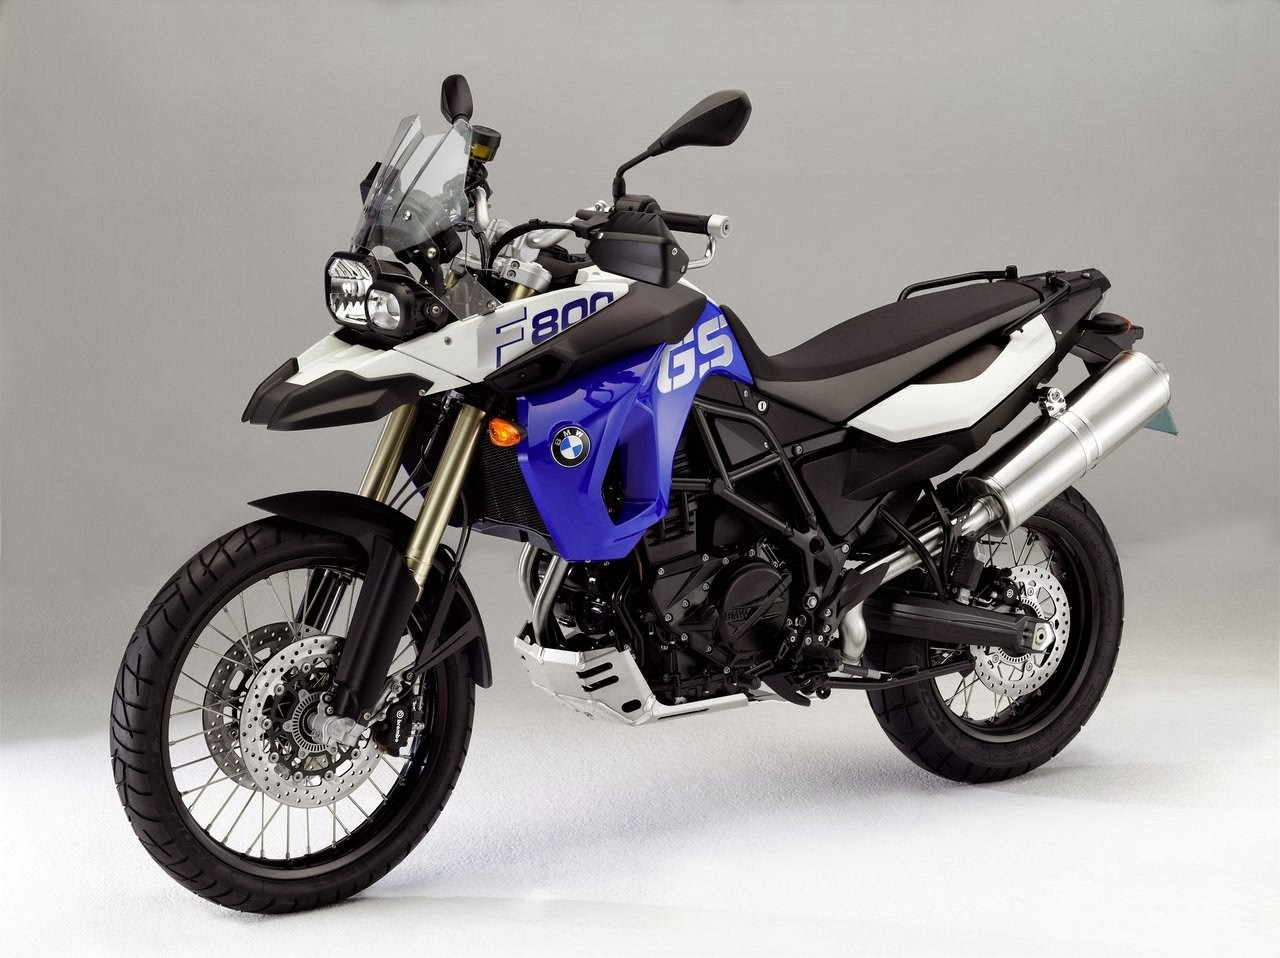 bmw f 800 r photos just welcome to automotive. Black Bedroom Furniture Sets. Home Design Ideas